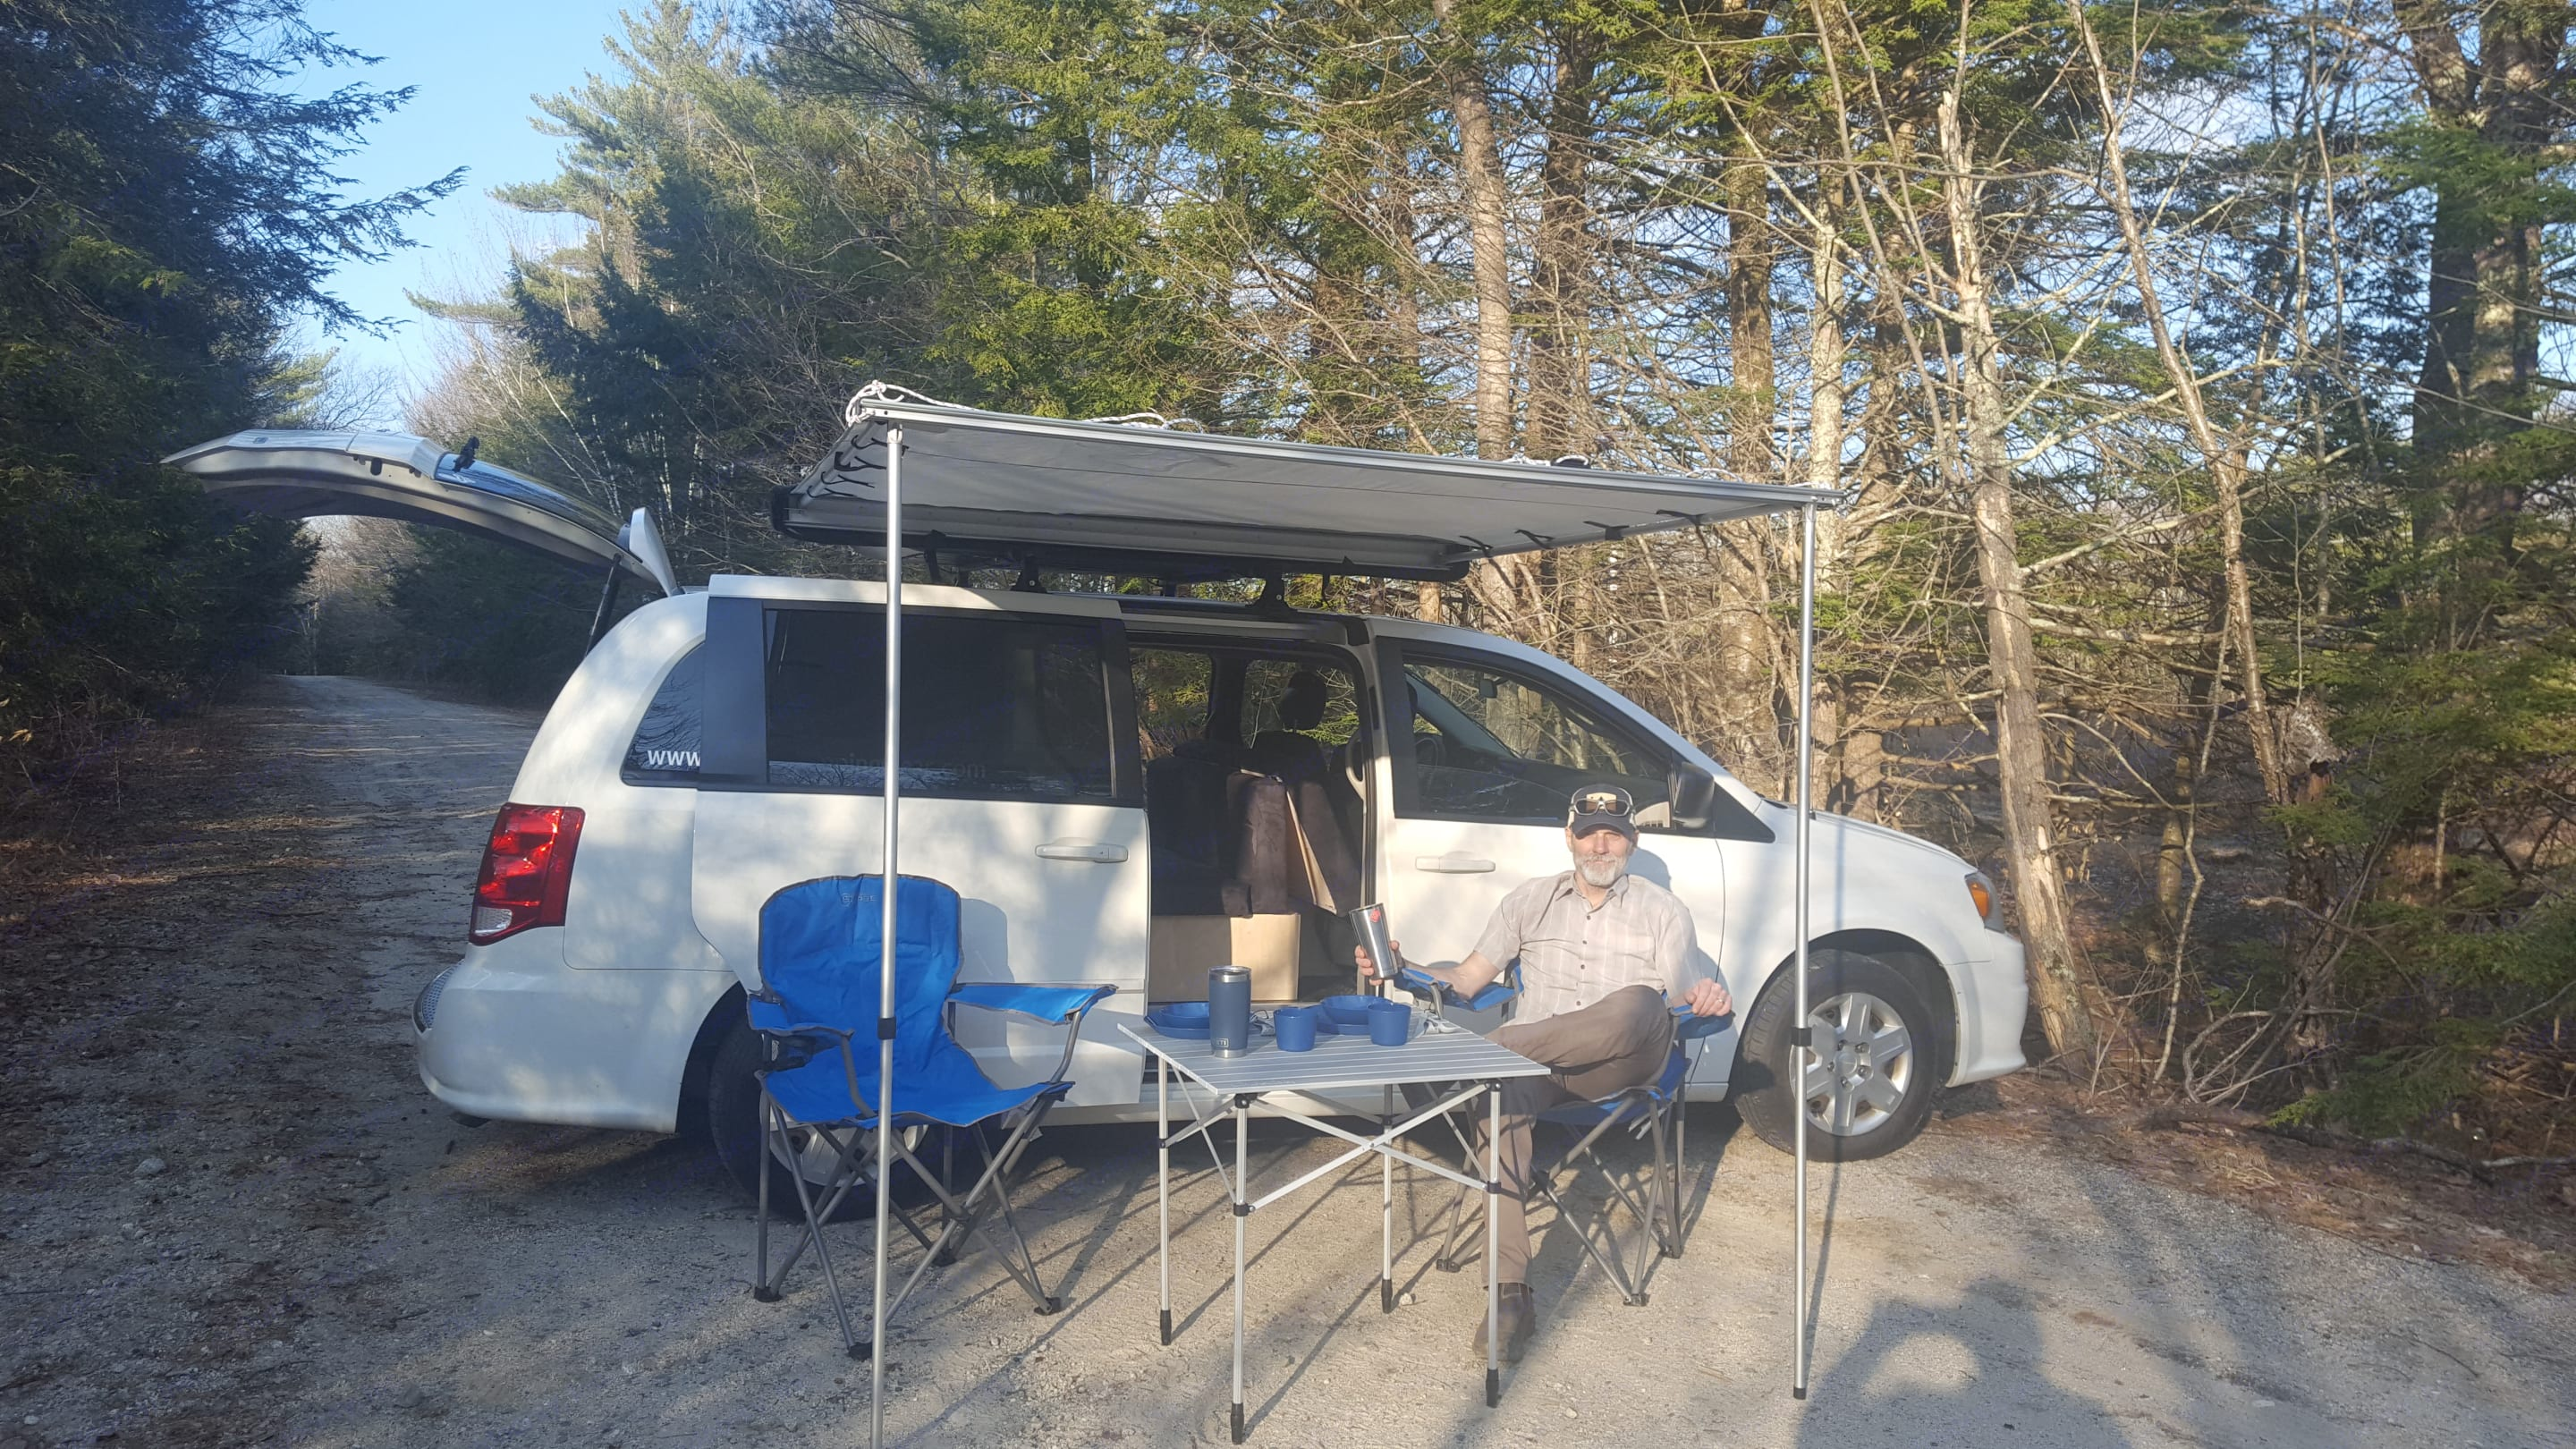 The van set up for breakfast, lunch, dinner or just relaxing at the campsite.. Dodge Caravan 2012